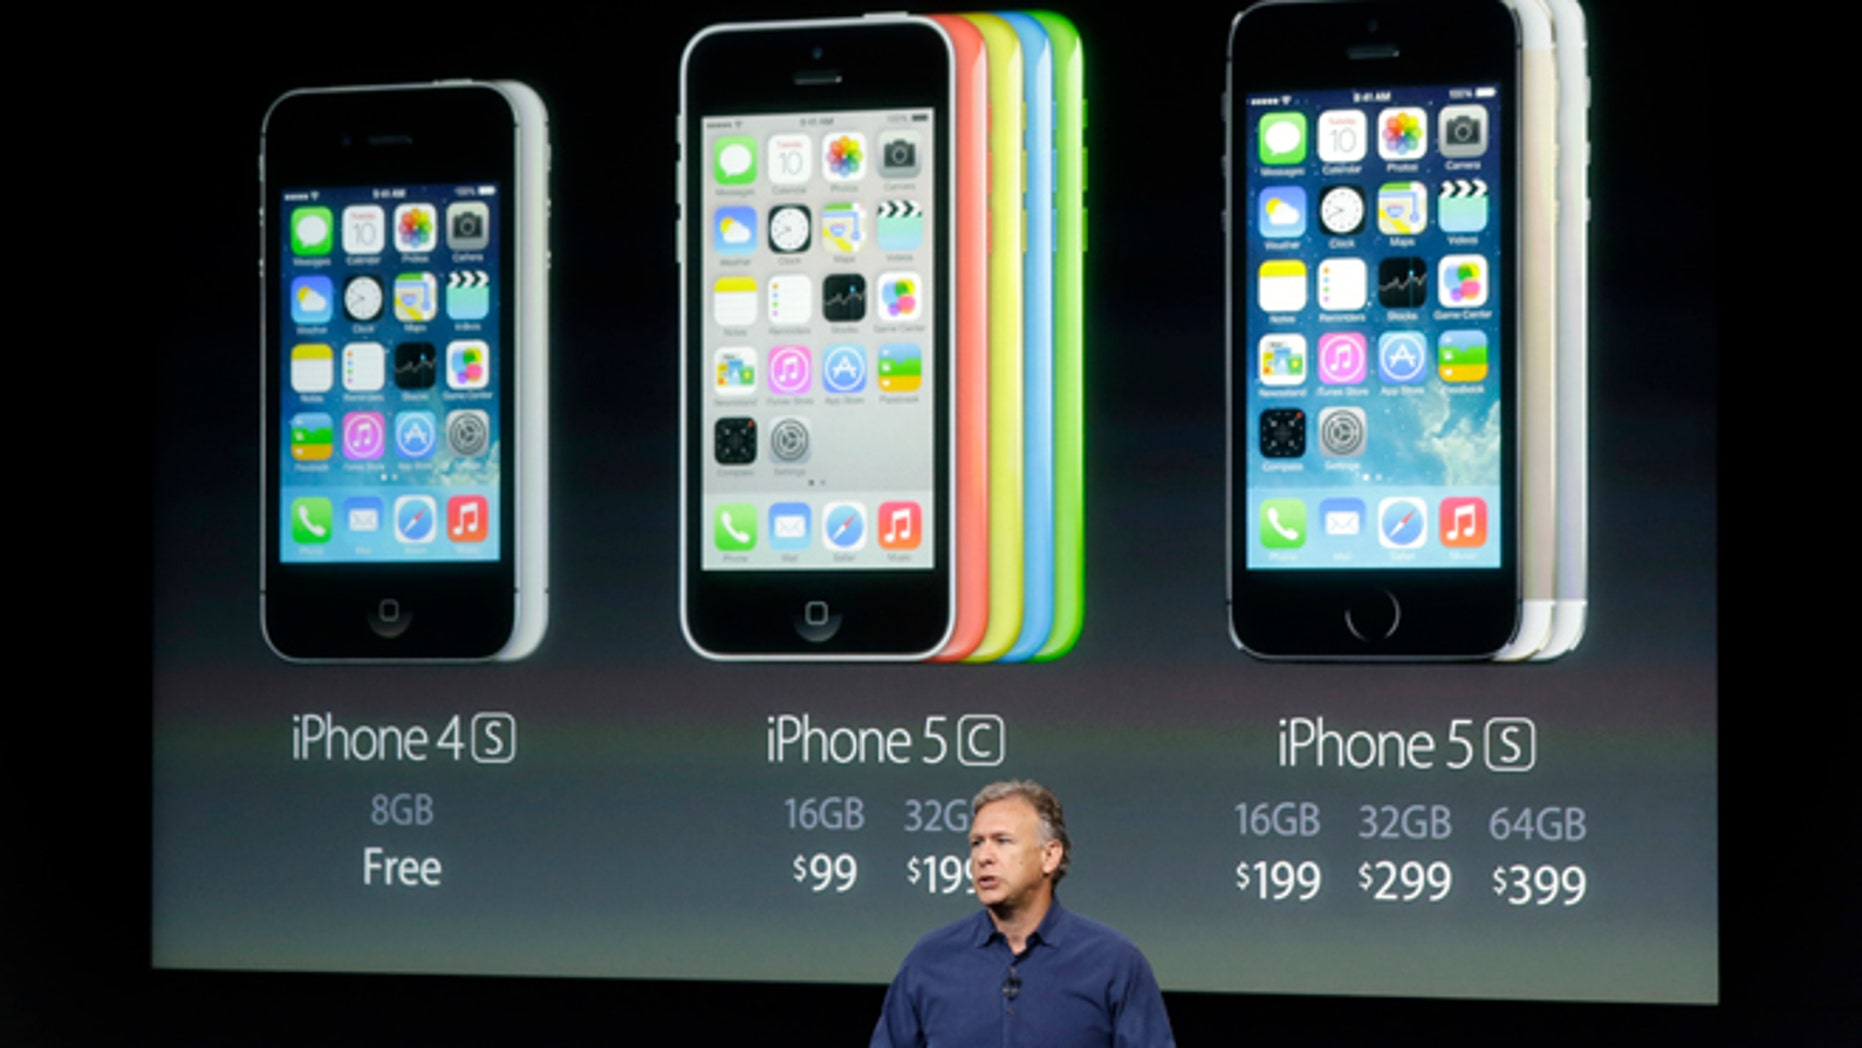 Phil Schiller, Apple's senior vice president of worldwide product marketing, speaks on stage during the introduction of the new iPhone 5c and 5s in Cupertino, Calif., Tuesday, Sept. 10, 2013. (AP Photo/Marcio Jose Sanchez)